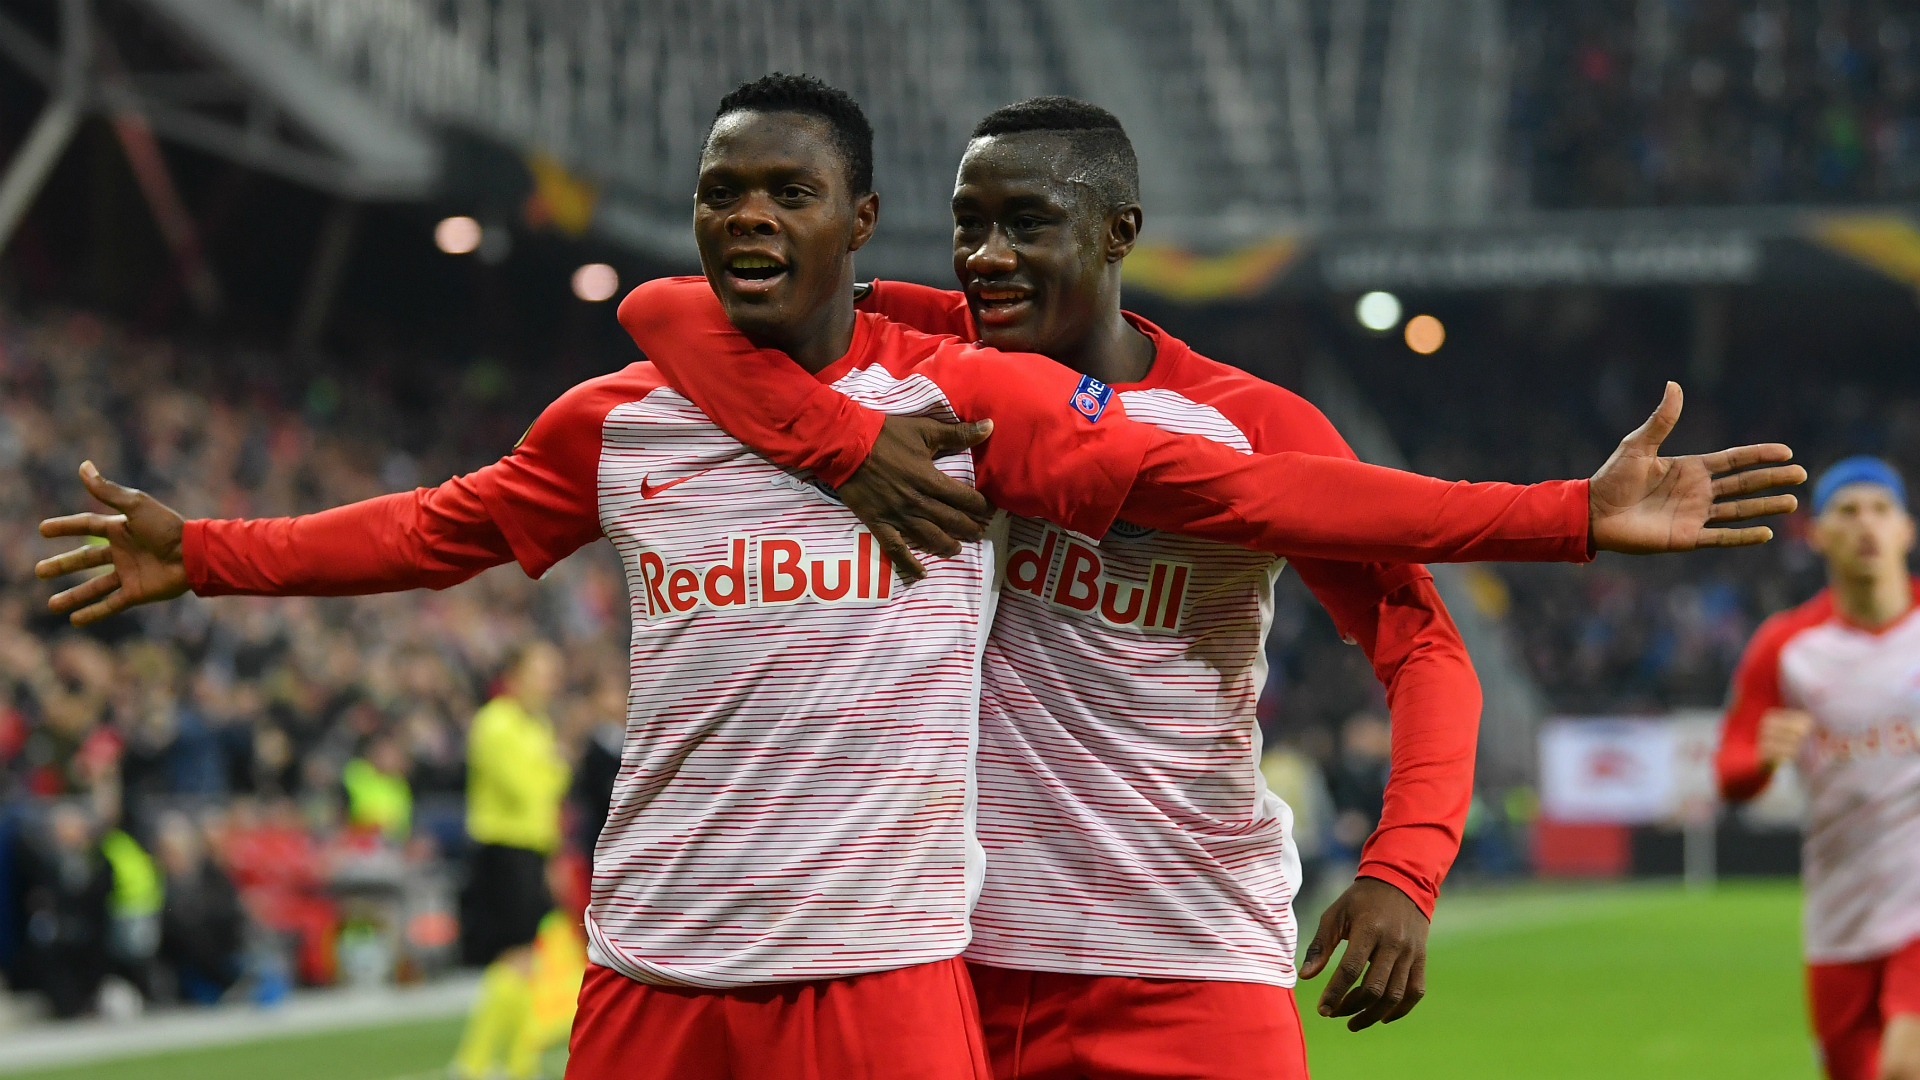 Patson Daka ends goal drought in RB Salzburg's Europa League win | Goal.com